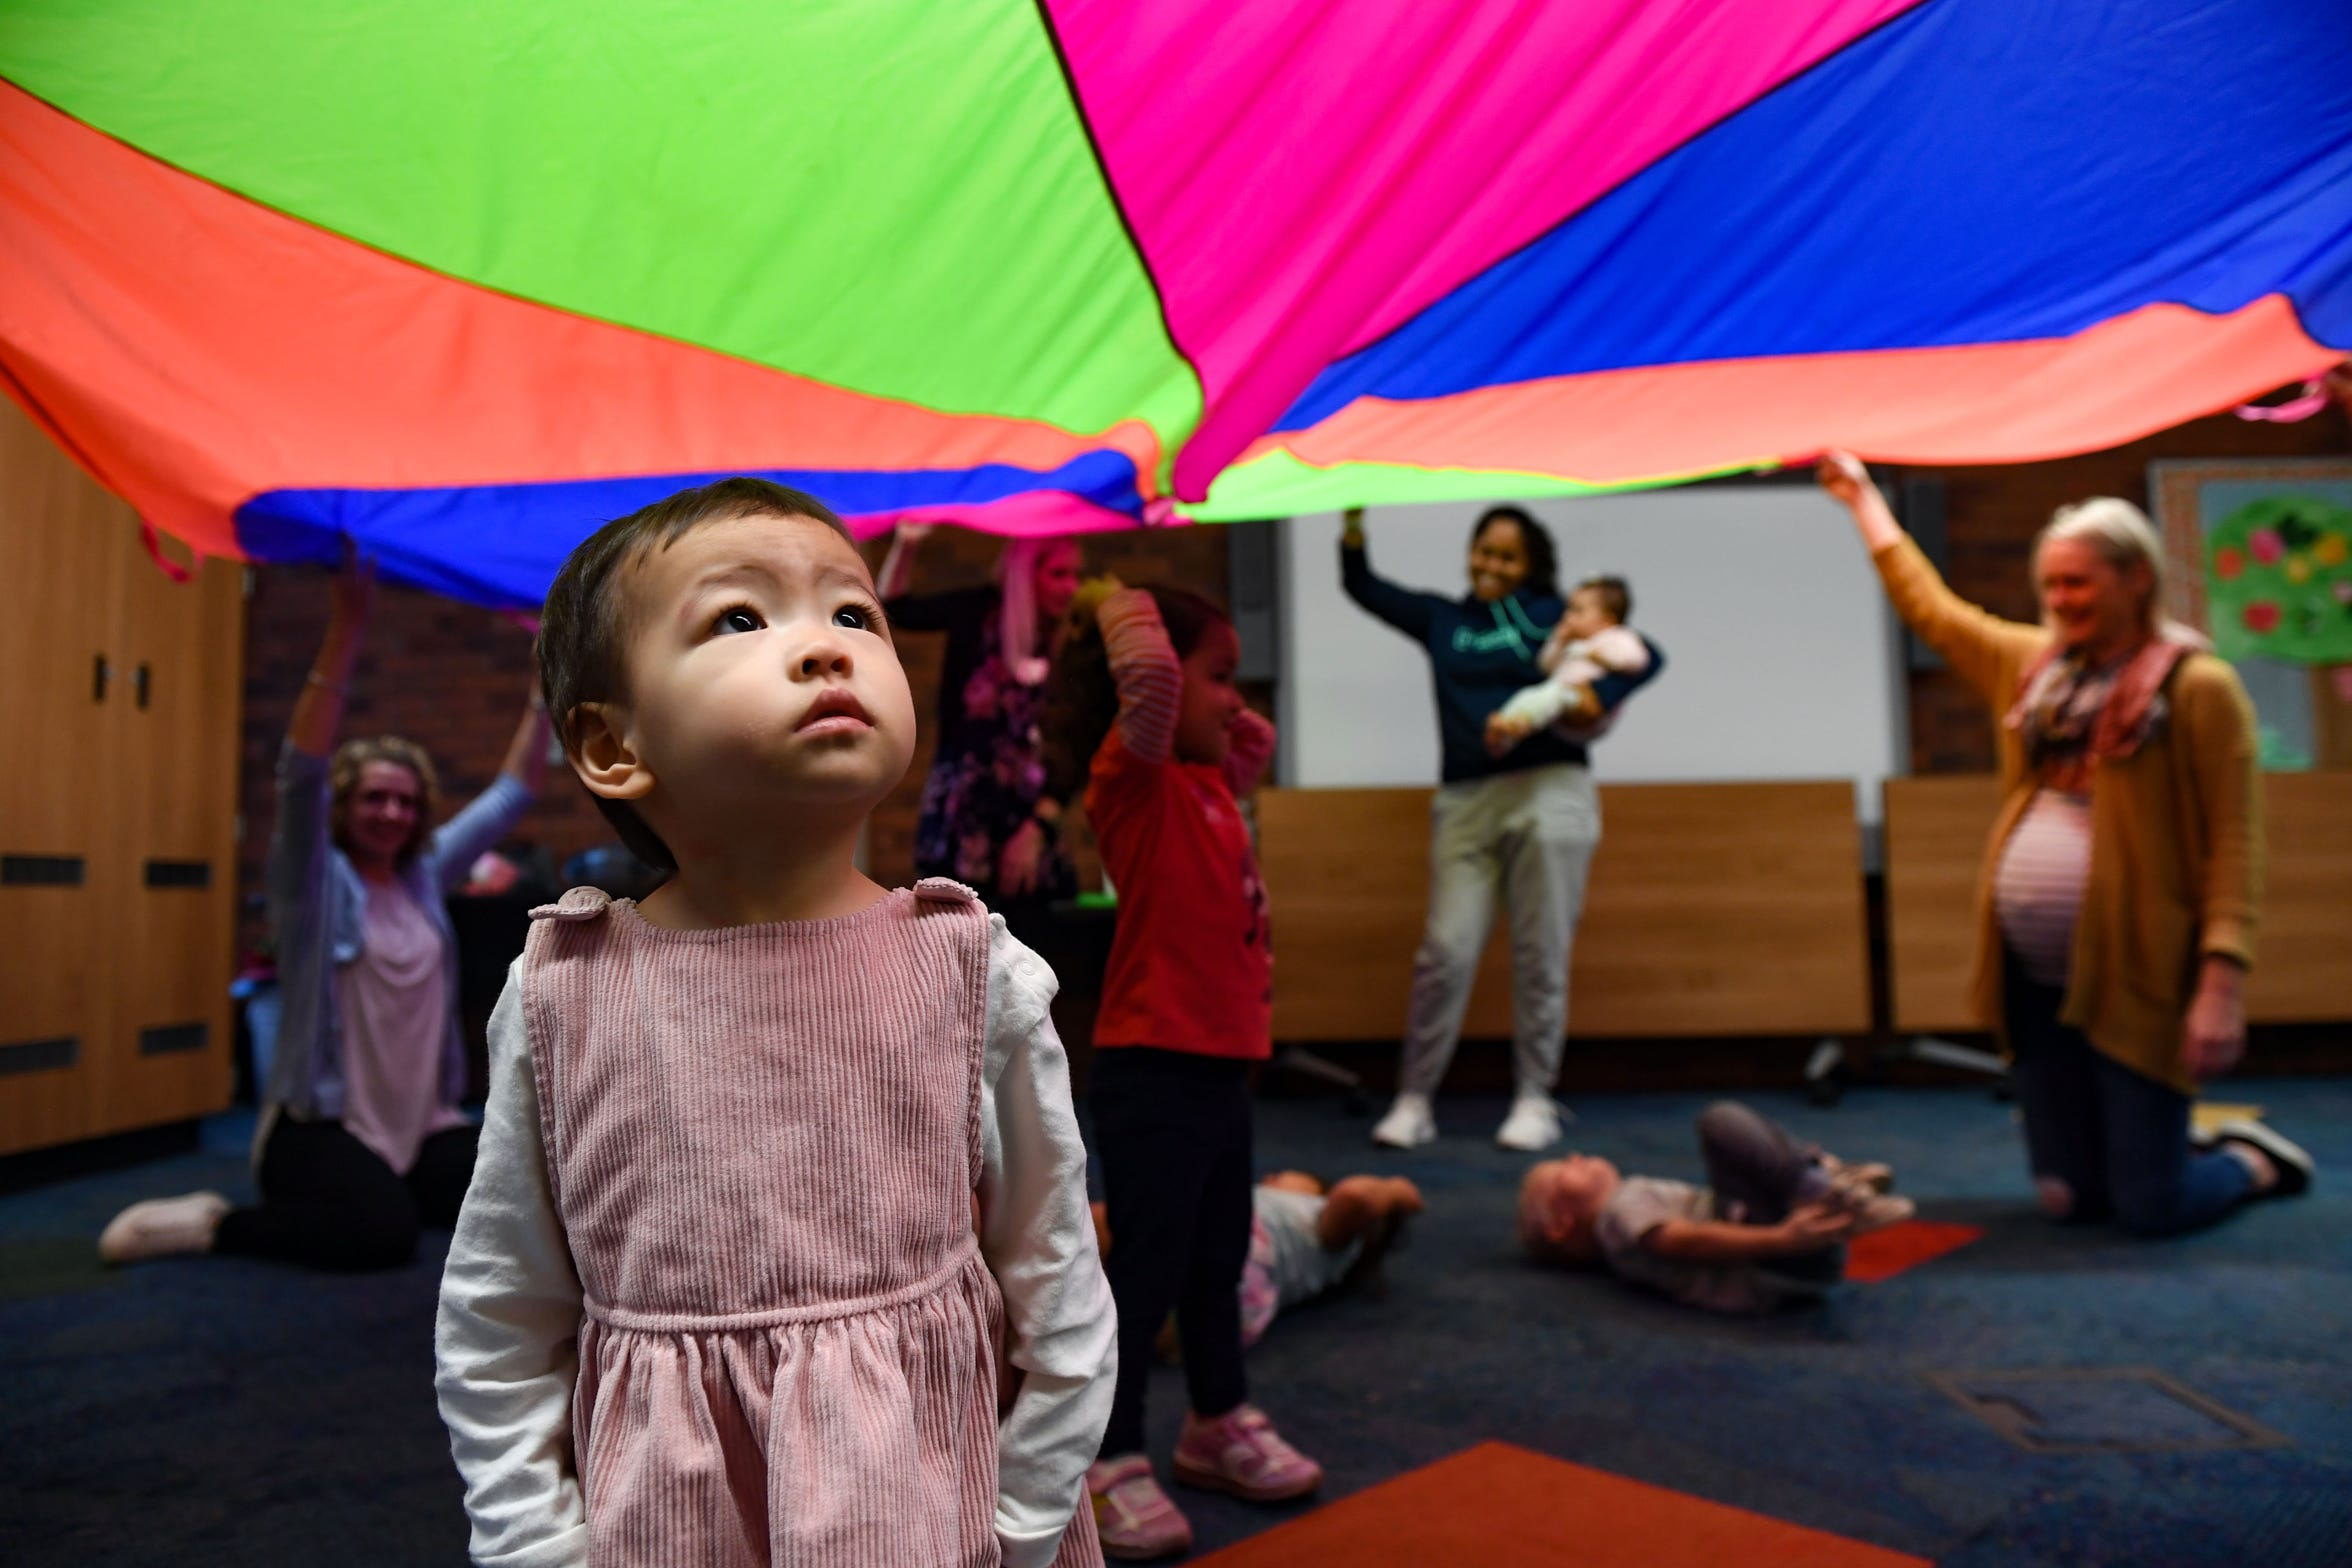 Mila Yang stares in awe at the moving colors of a parachute during a music and movement program on Friday, September 27, 2019 at the Sioux Falls downtown library.